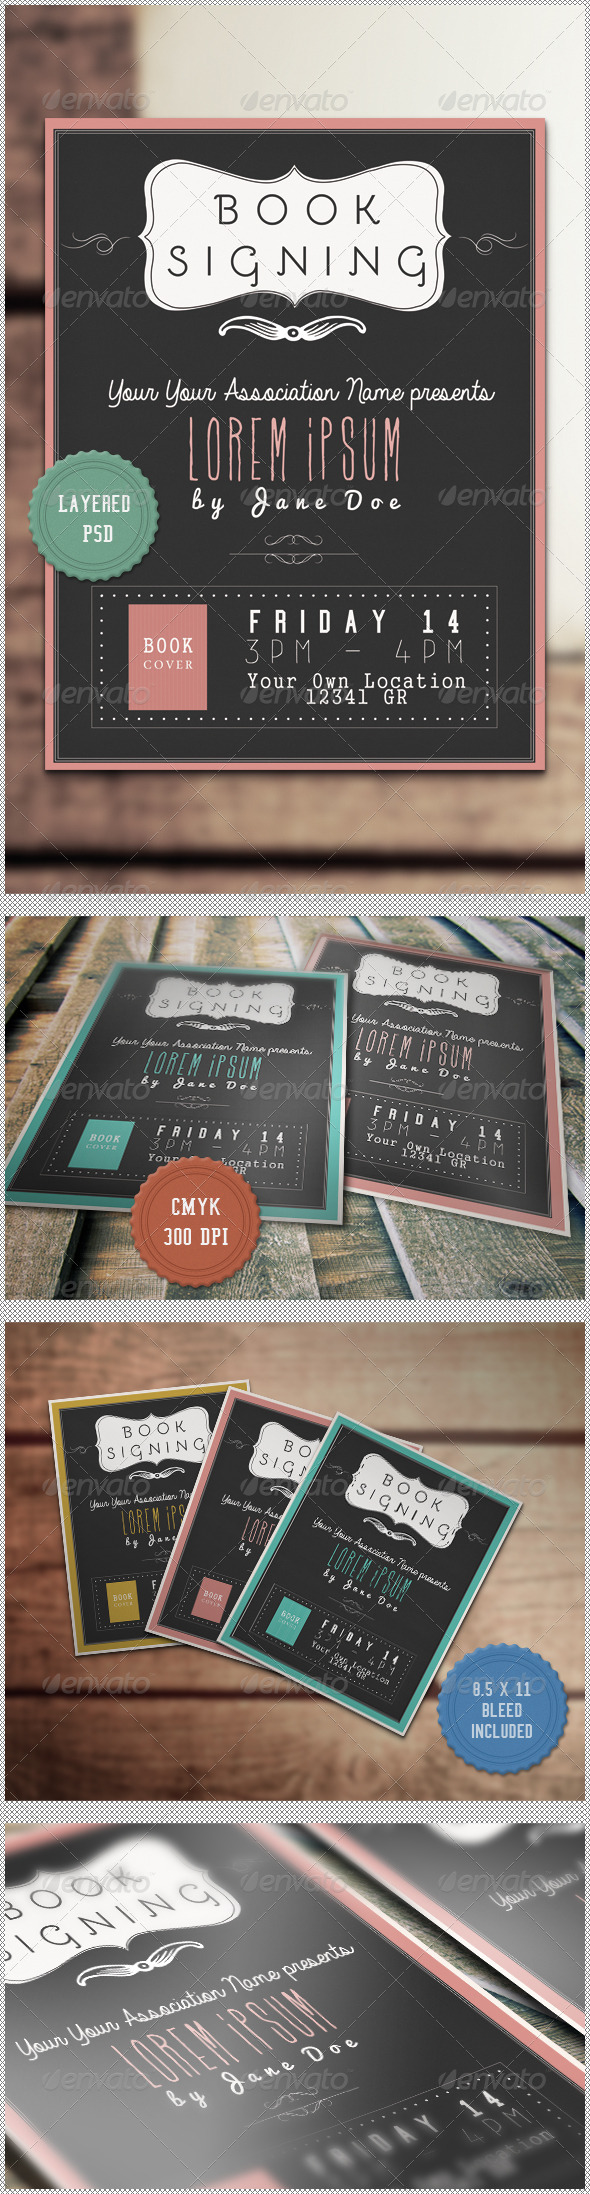 Ayaandesignz I Will Design Book Signing Book Launching Any Event Flyer Poster For 10 On Fiverr Com Book Signing Event Book Release Party Book Signing